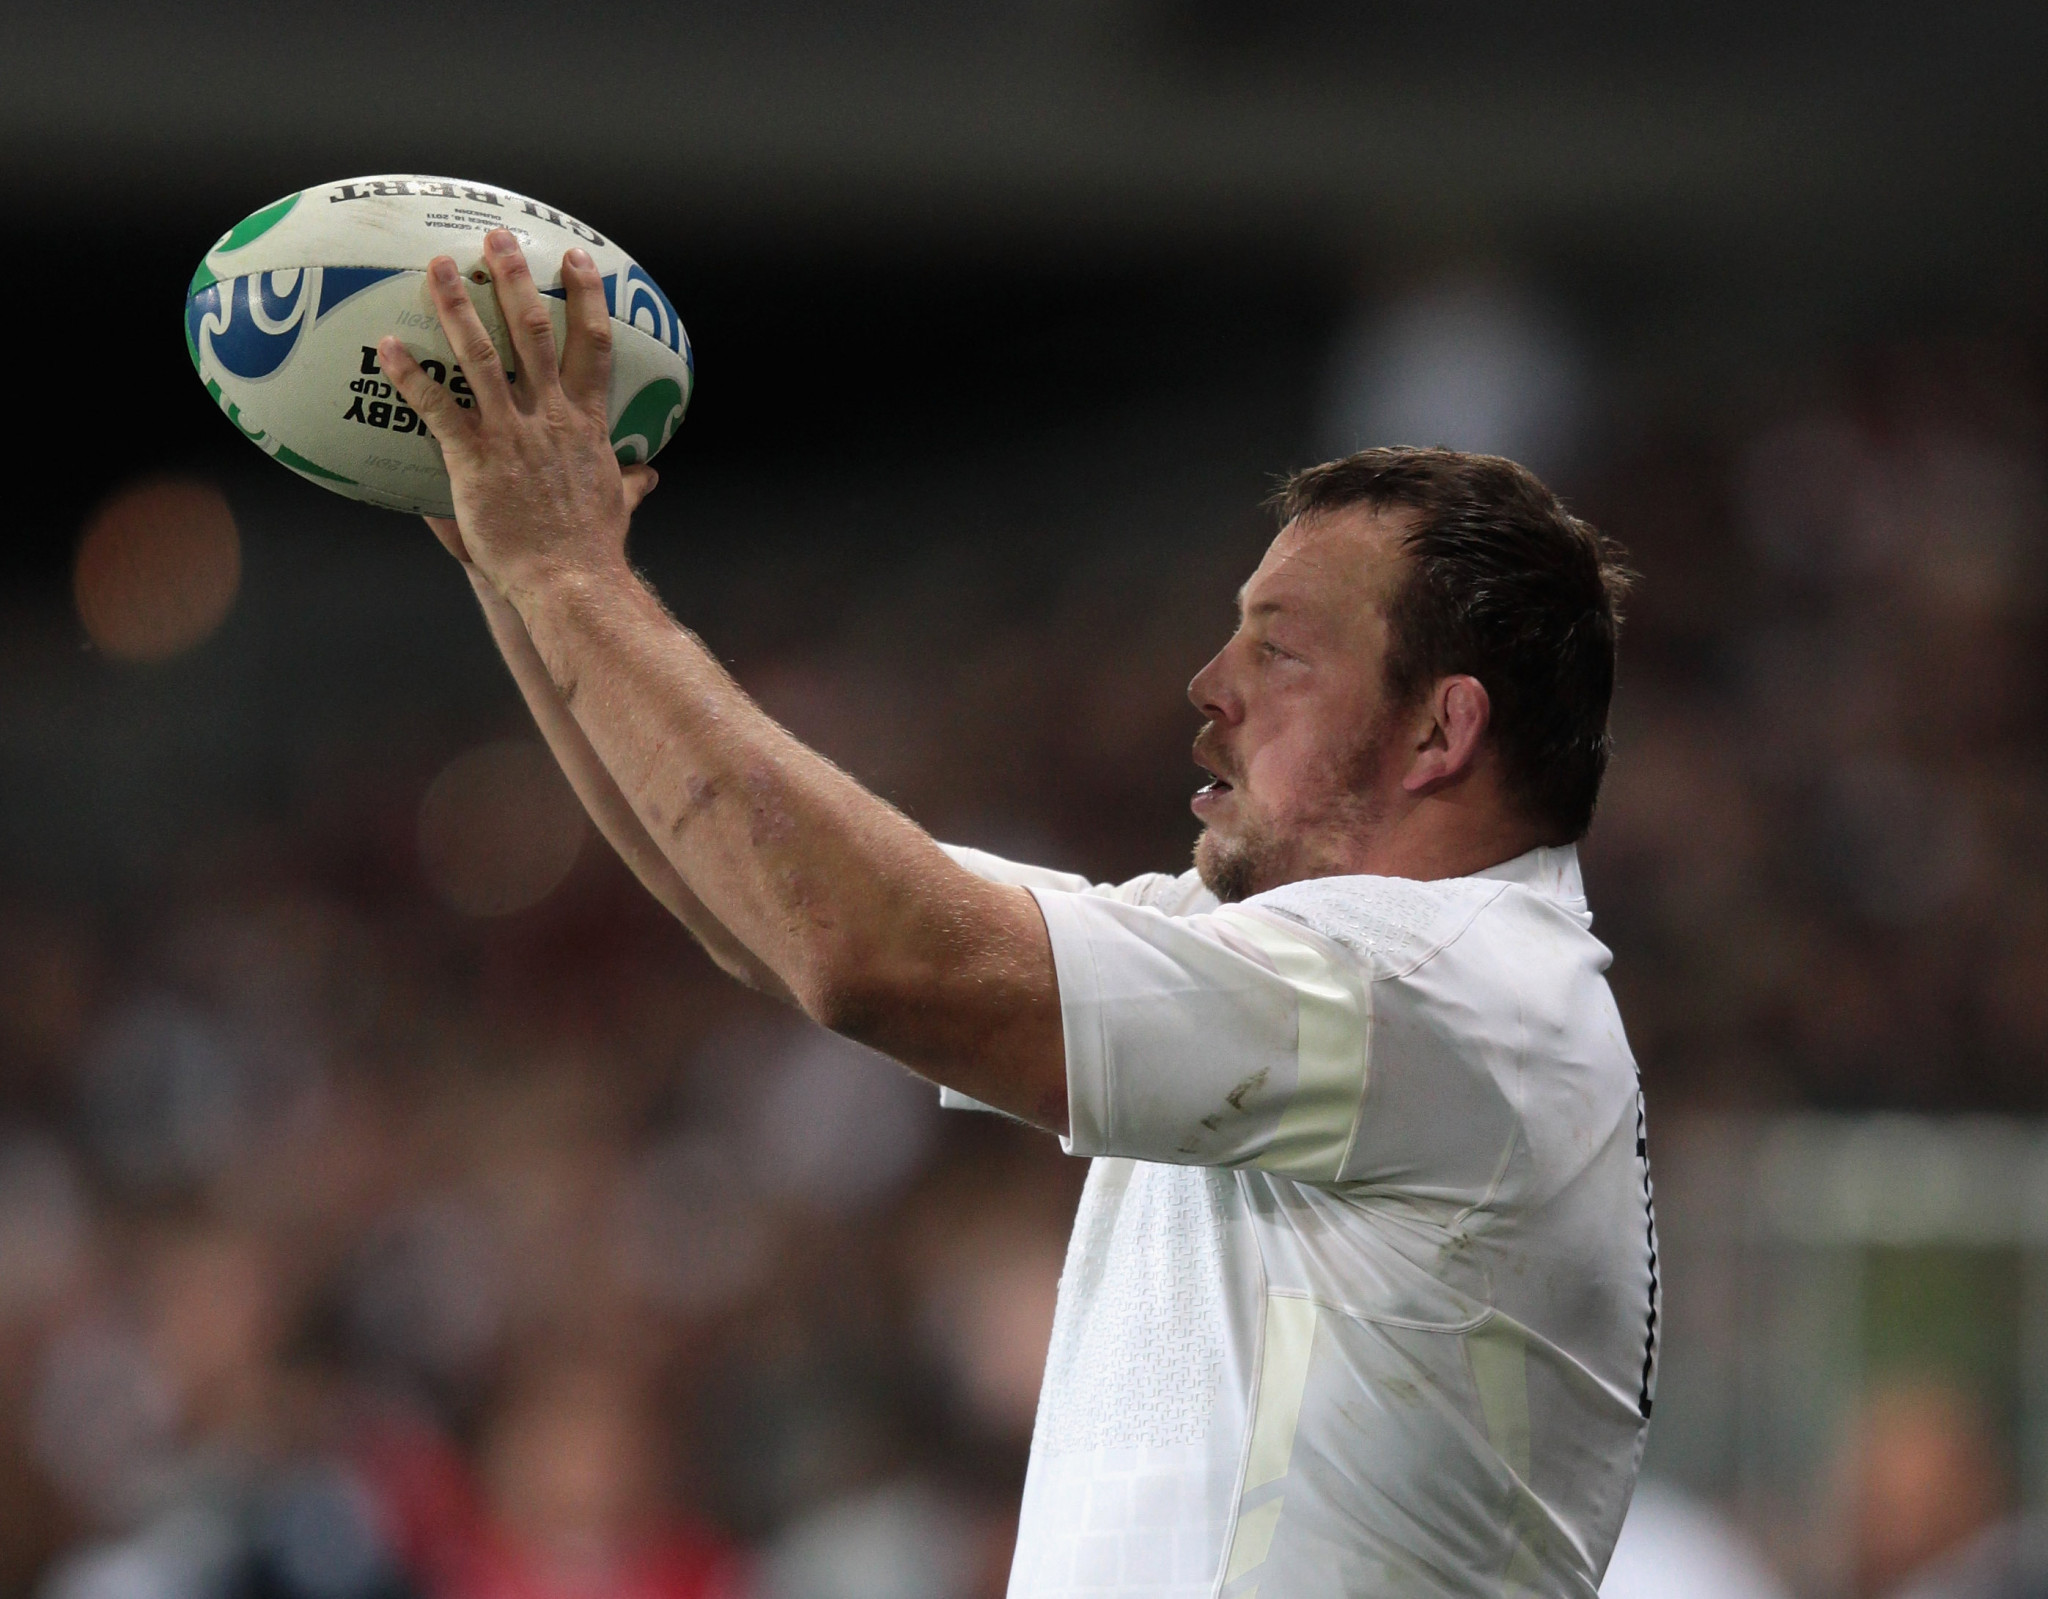 England hooker Steve Thompson admitted he could not remember playing in any of England's winning 2003 Rugby World Cup run because of early onset dementia ©Getty Images